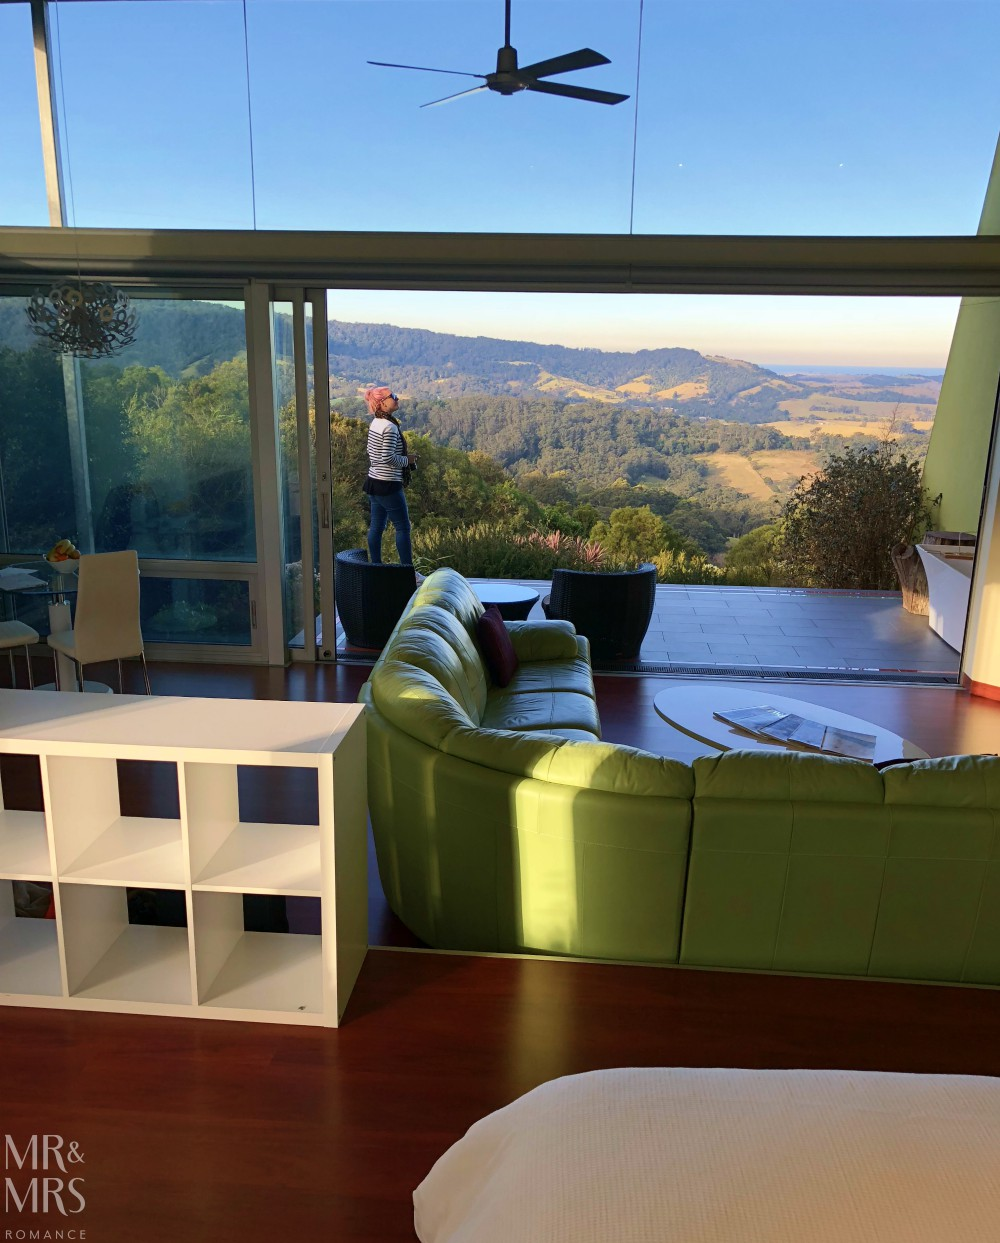 How to come home after a long journey - Mr & Mrs Romance - Mount Hay Retreat, Berry